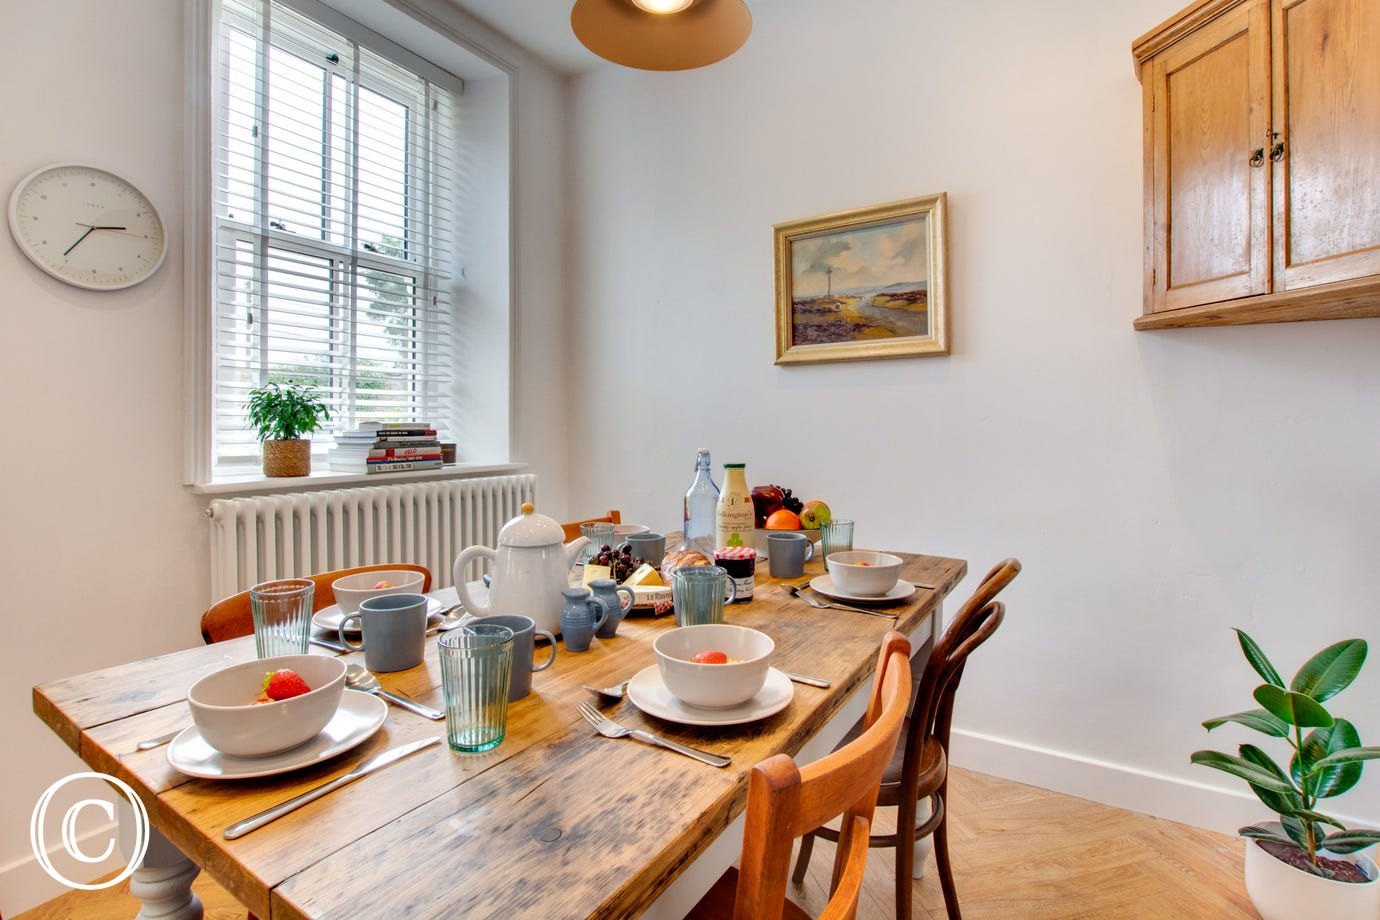 Spacious dining area of the kitchen, views over the rear garden